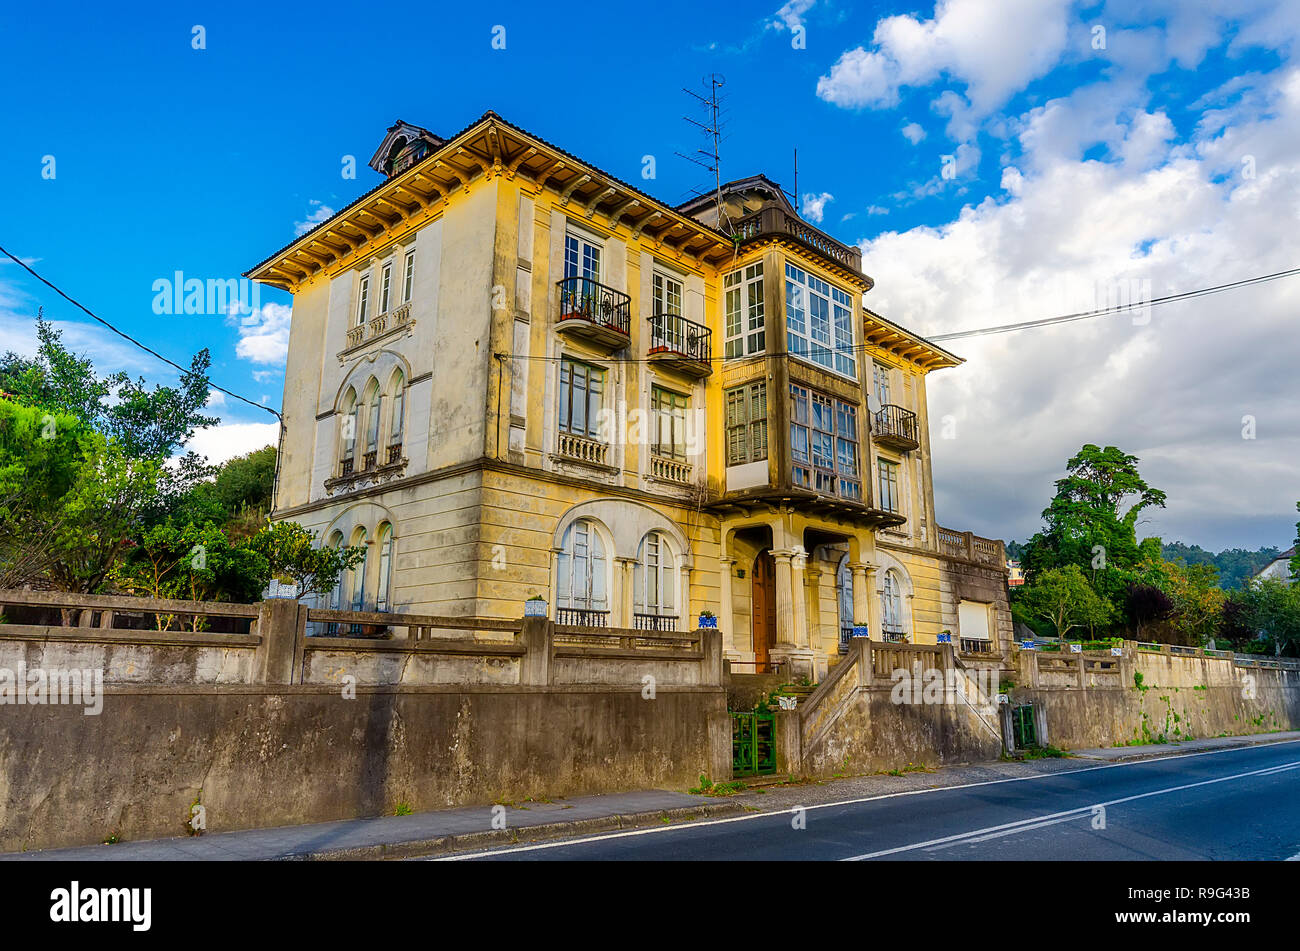 Old yellow house. - Stock Image